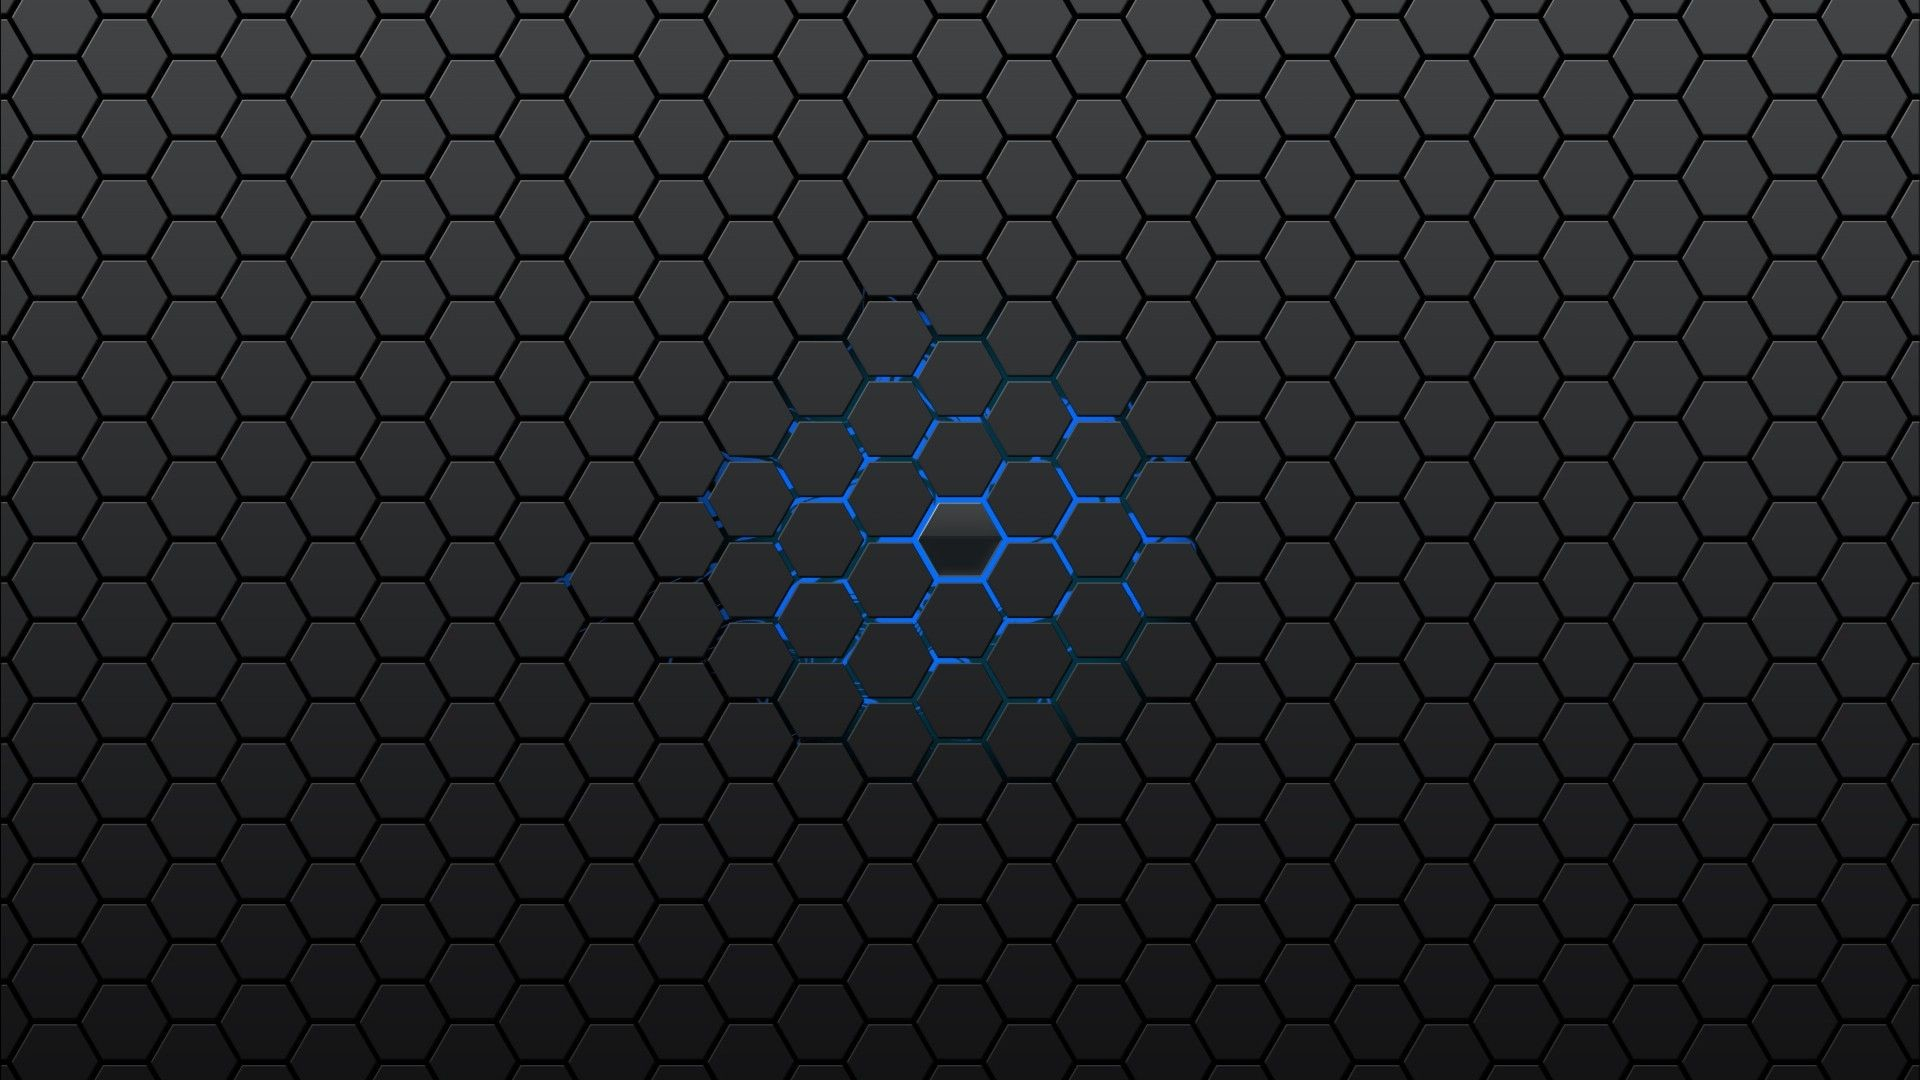 Res: 1920x1080, Black Honeycomb Wallpaper - WallpaperSafari